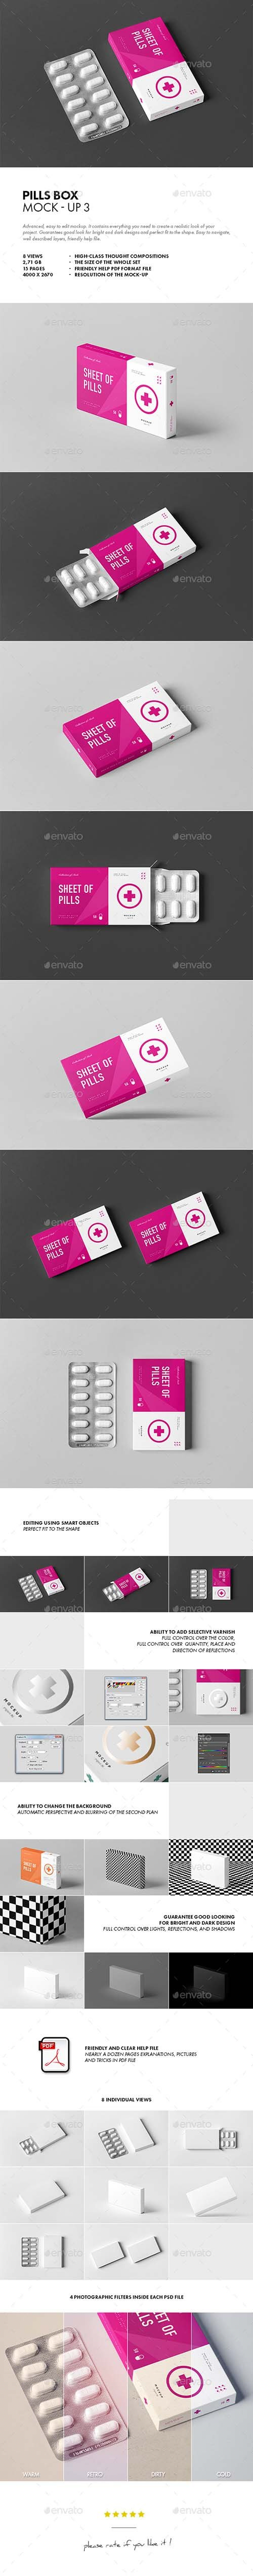 GR - Pills Box Mock-up 3 21812476